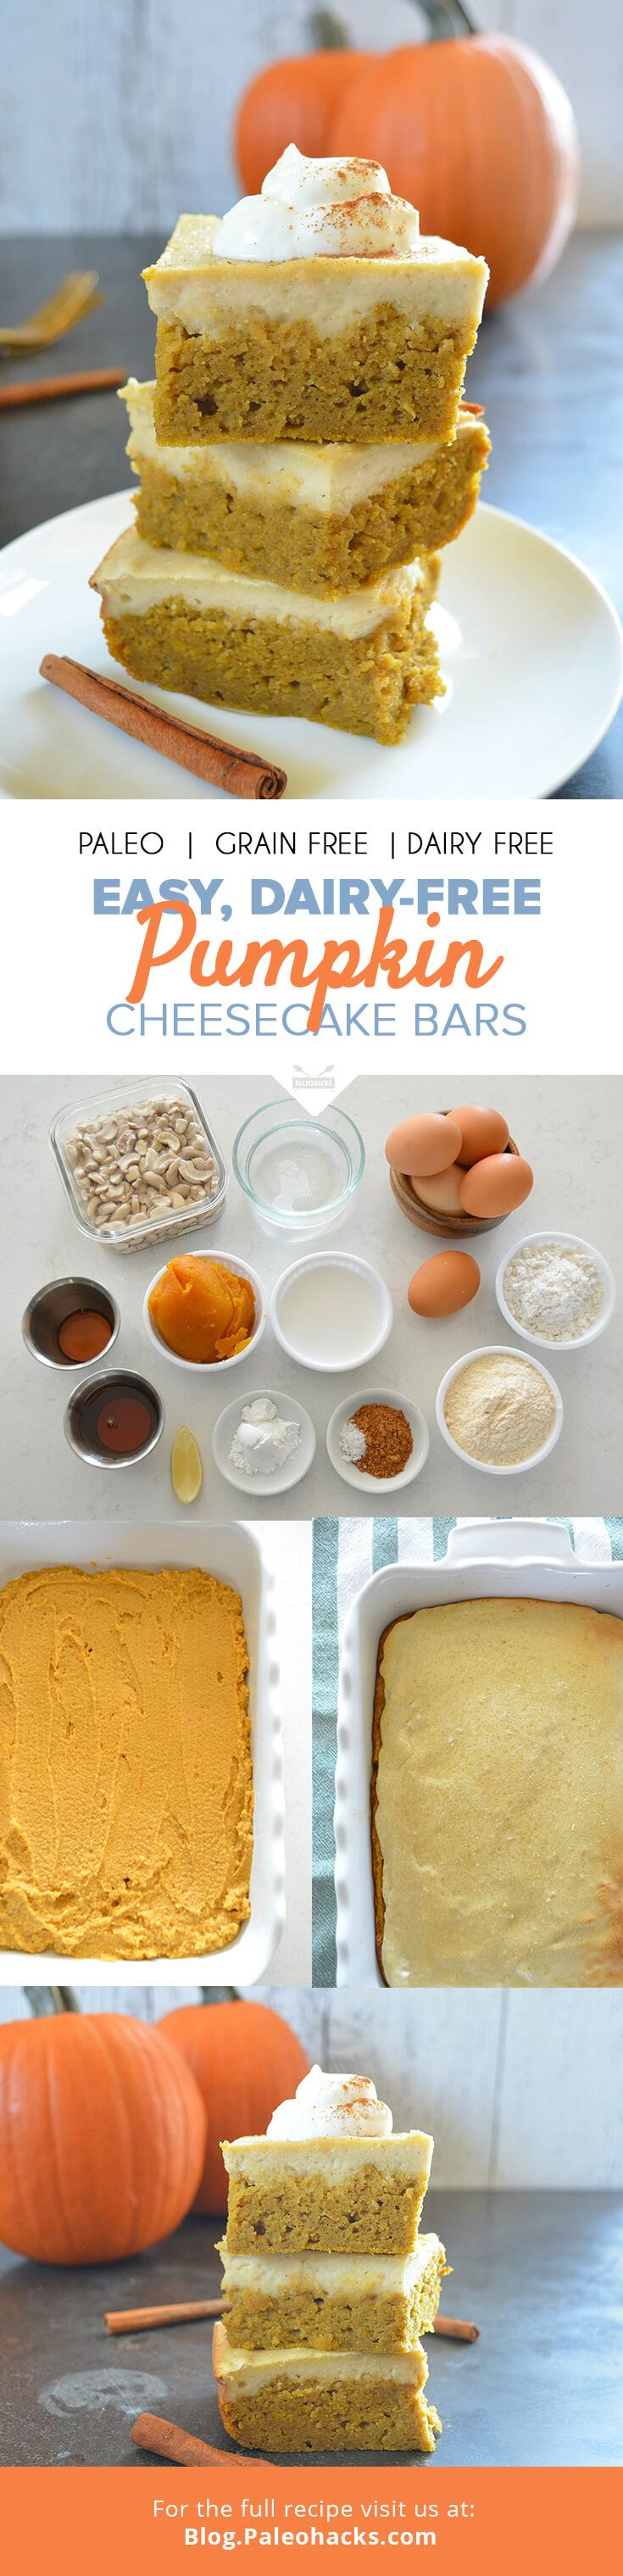 Tis the season for pumpkin everything! For the full recipe, visit us here: http://paleo.co/pumpkincheesecakebars